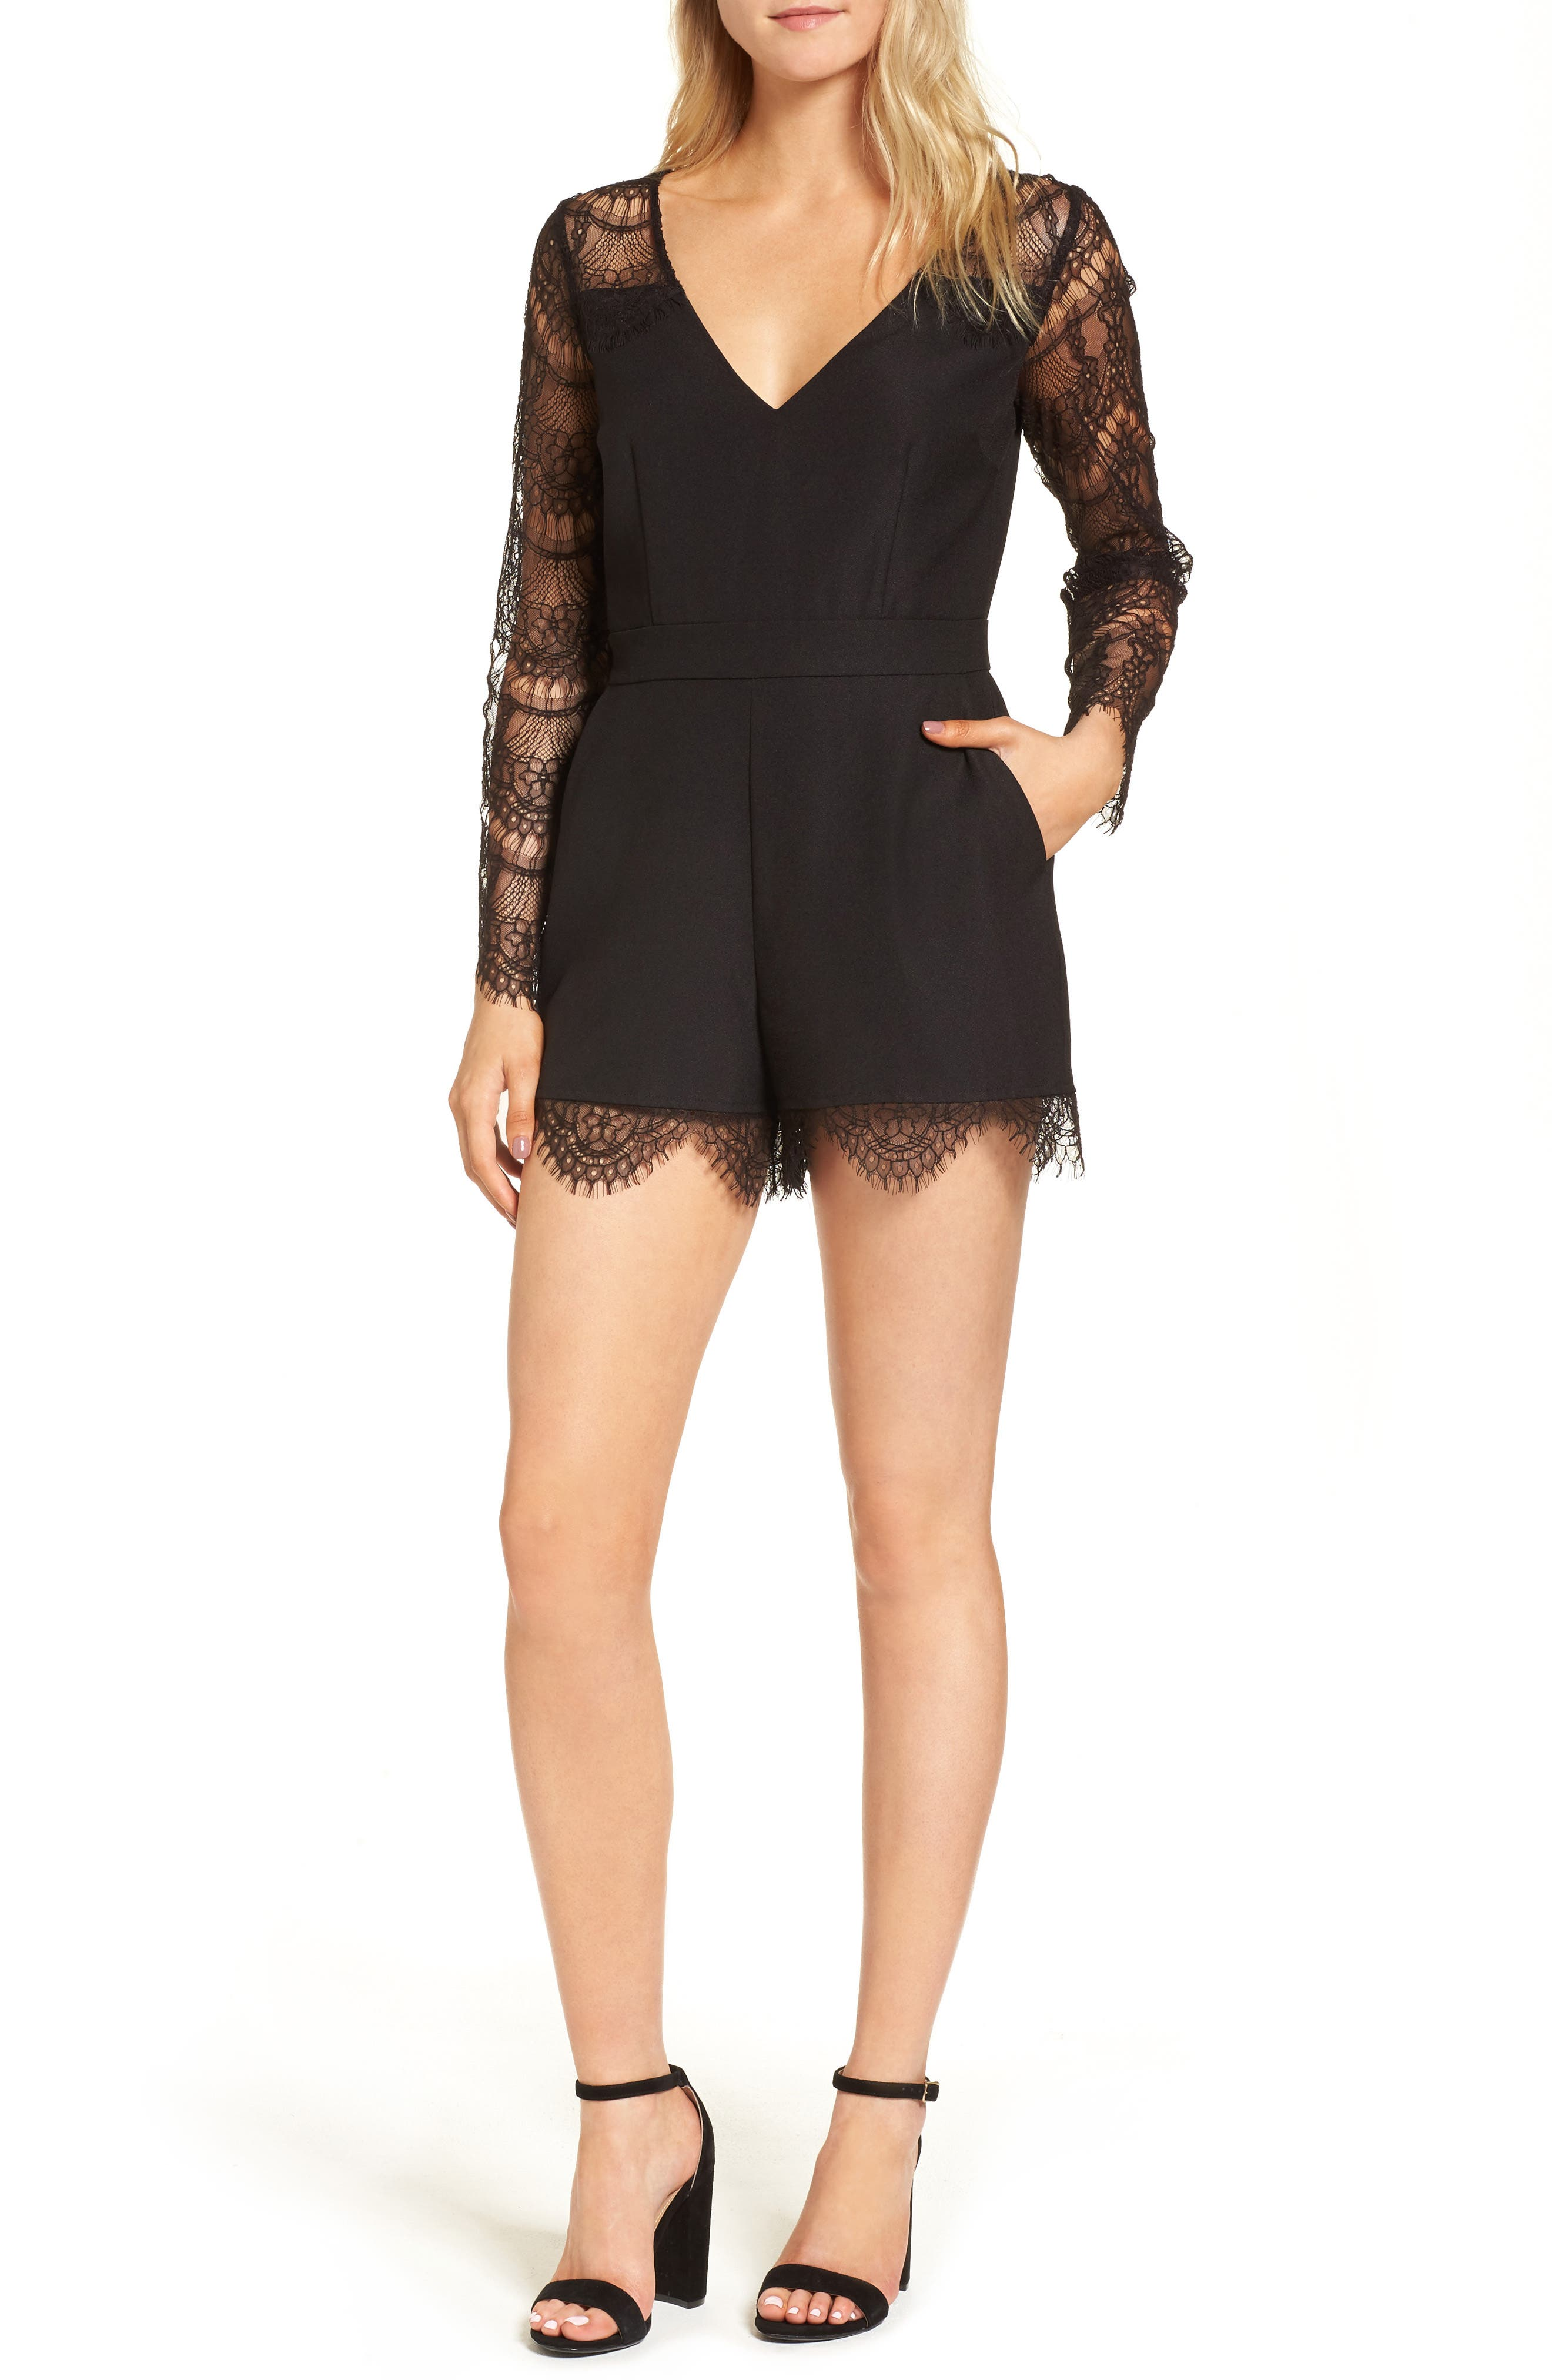 cupcakes and cashmere Erma Lace Romper